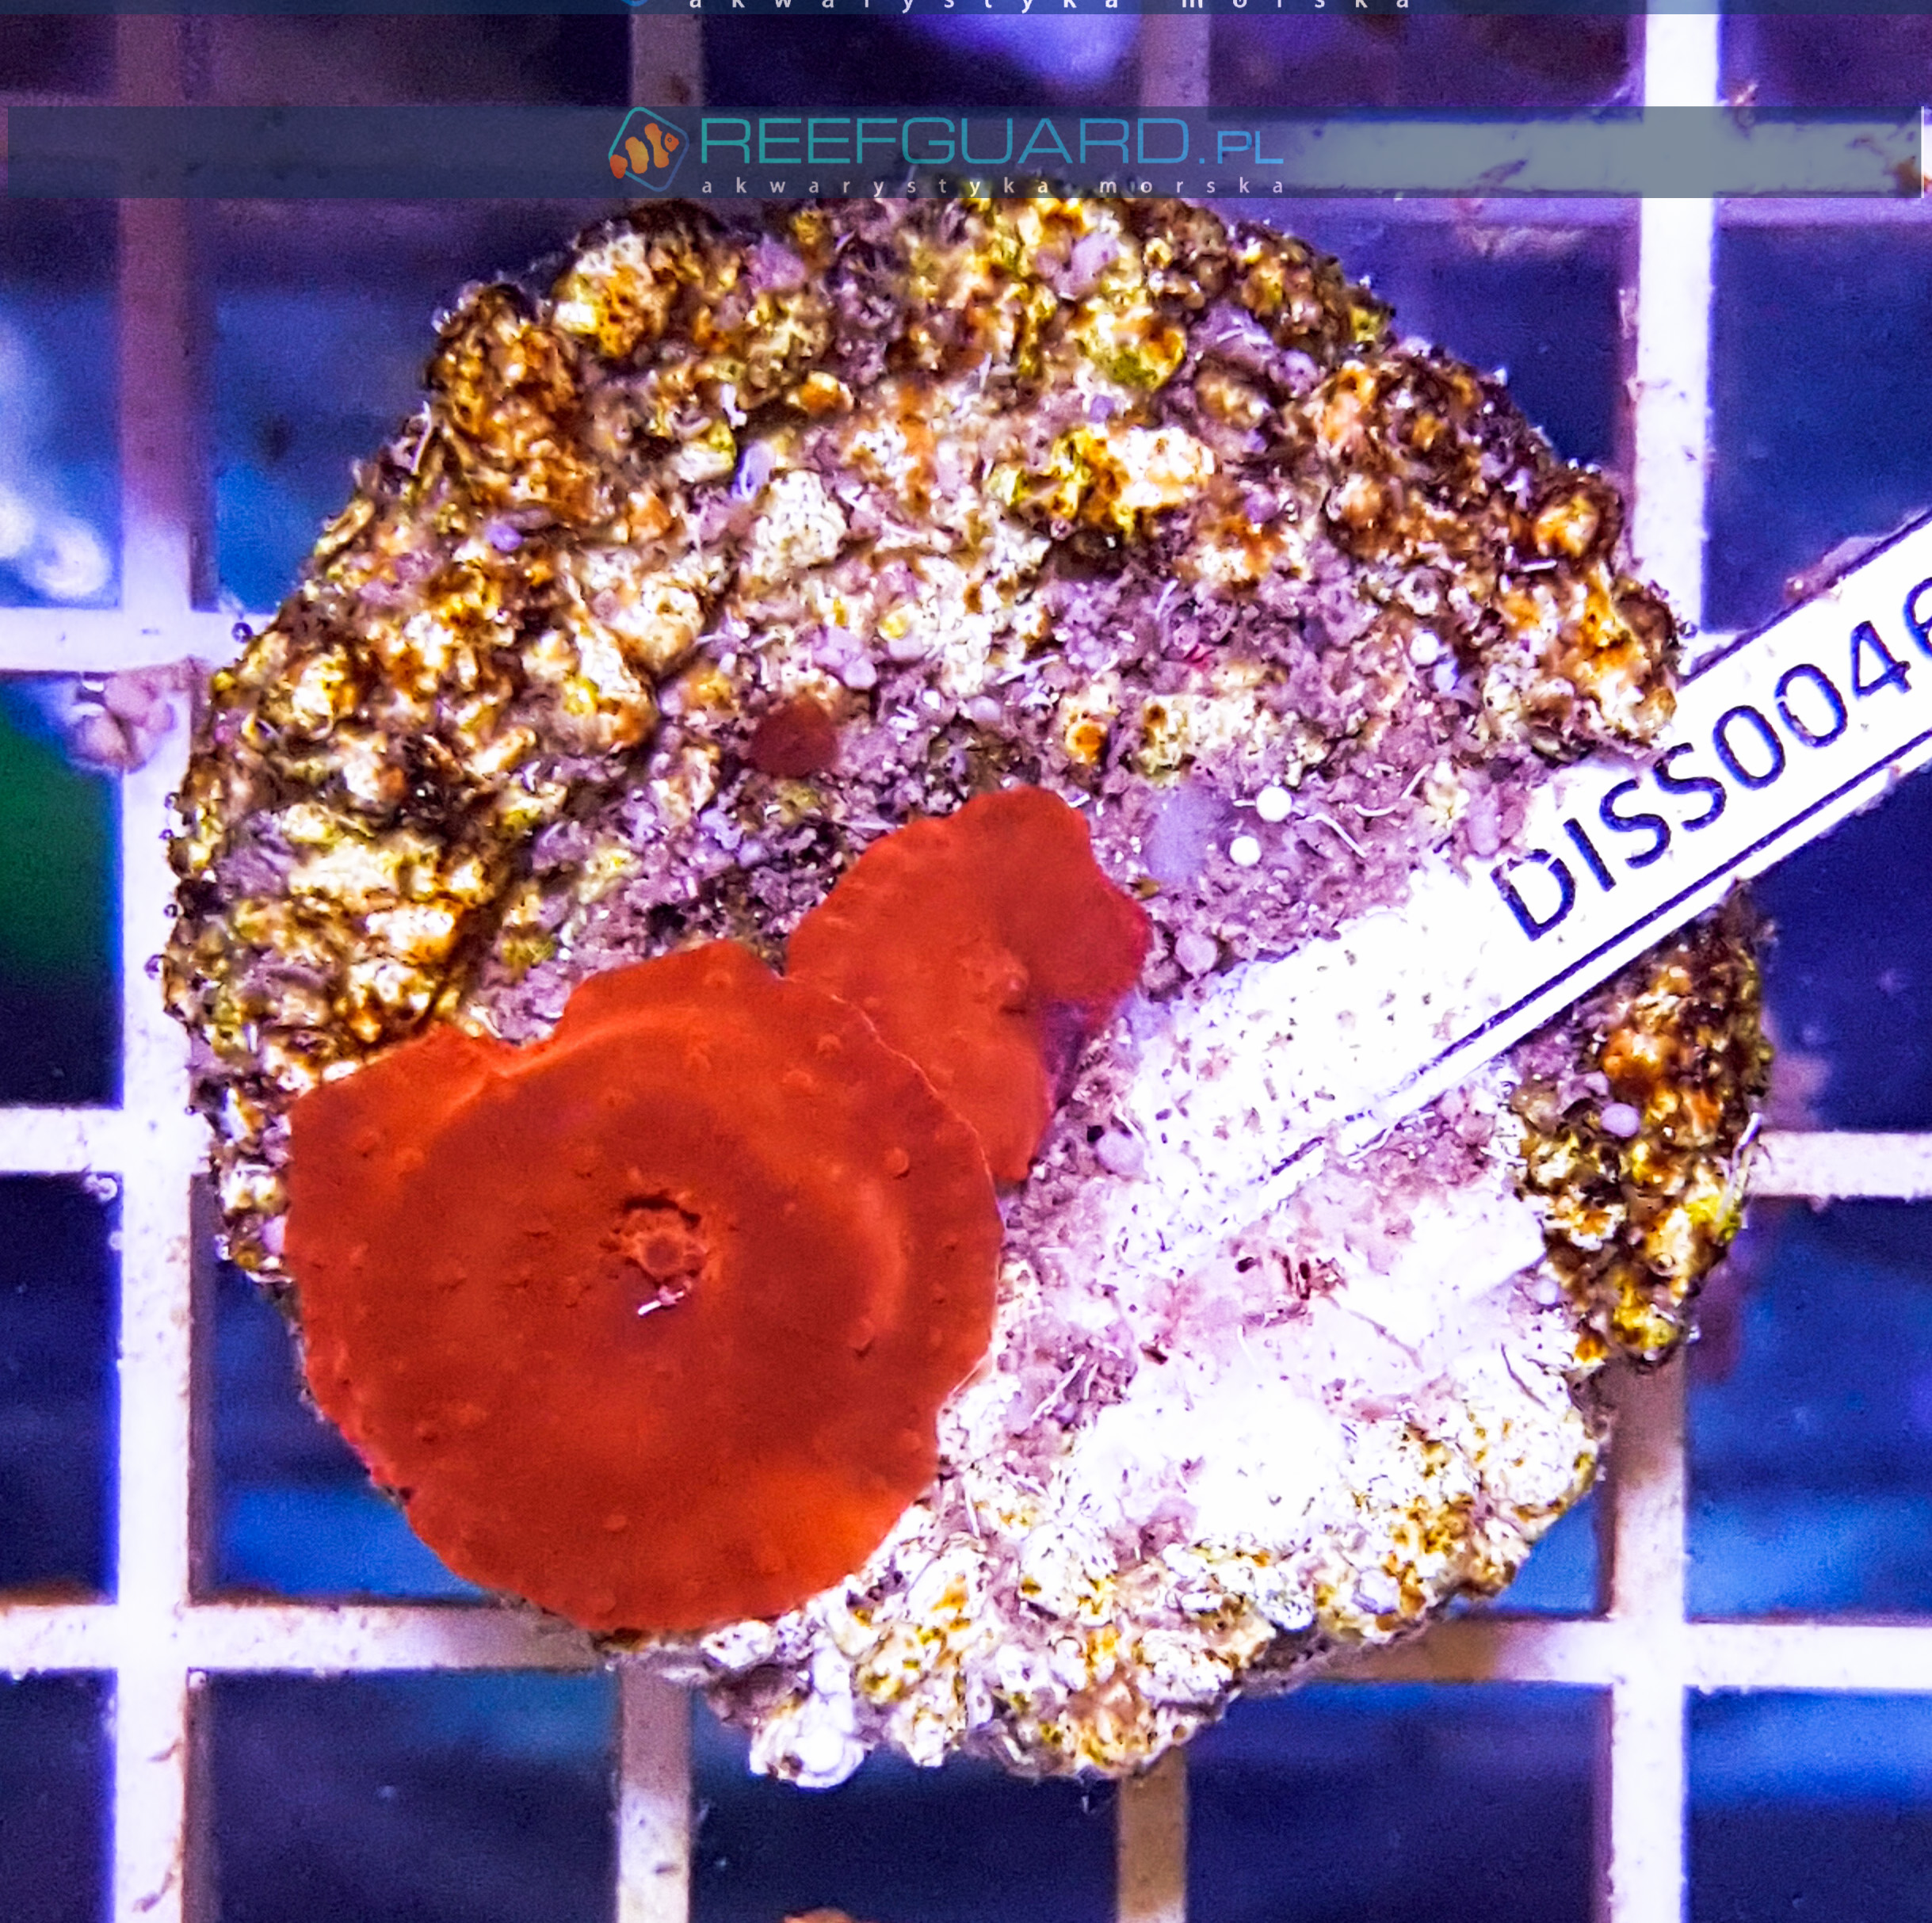 Discosoma RED Fluo WYSIWYG DISS0046 reefguard.pl